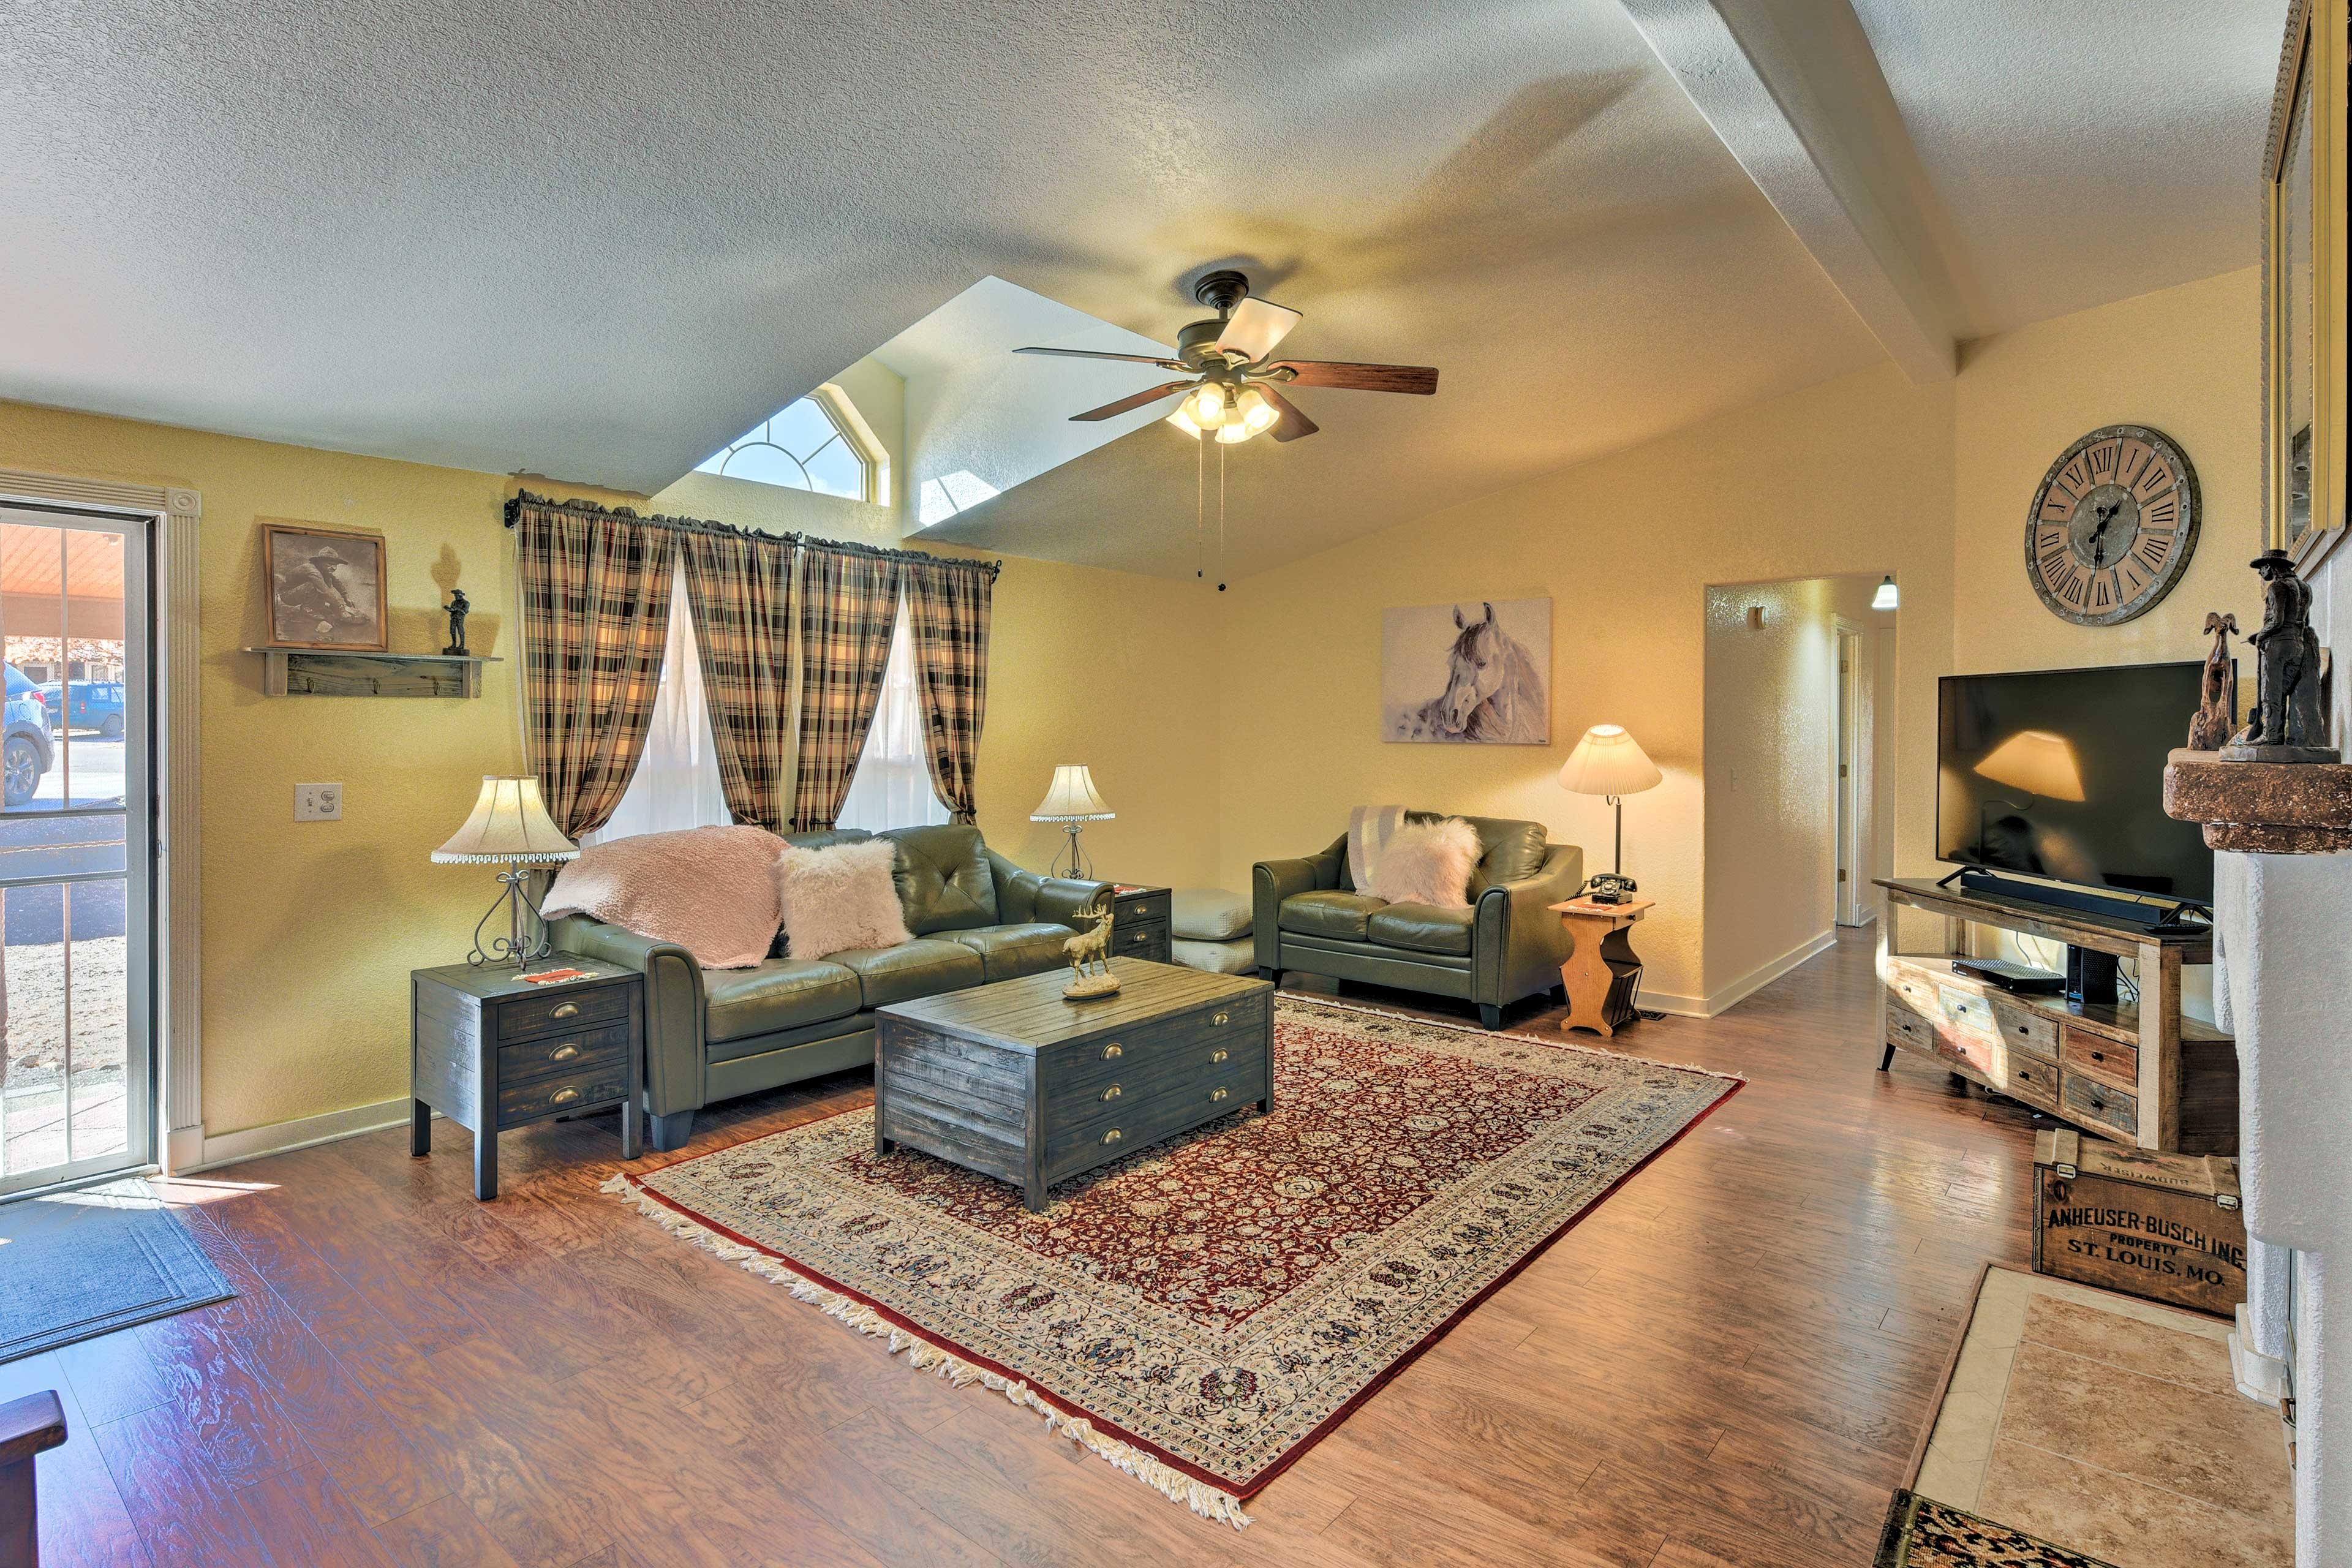 The home features 1,722 square feet of living space, 3 bedrooms, & 2 full baths.